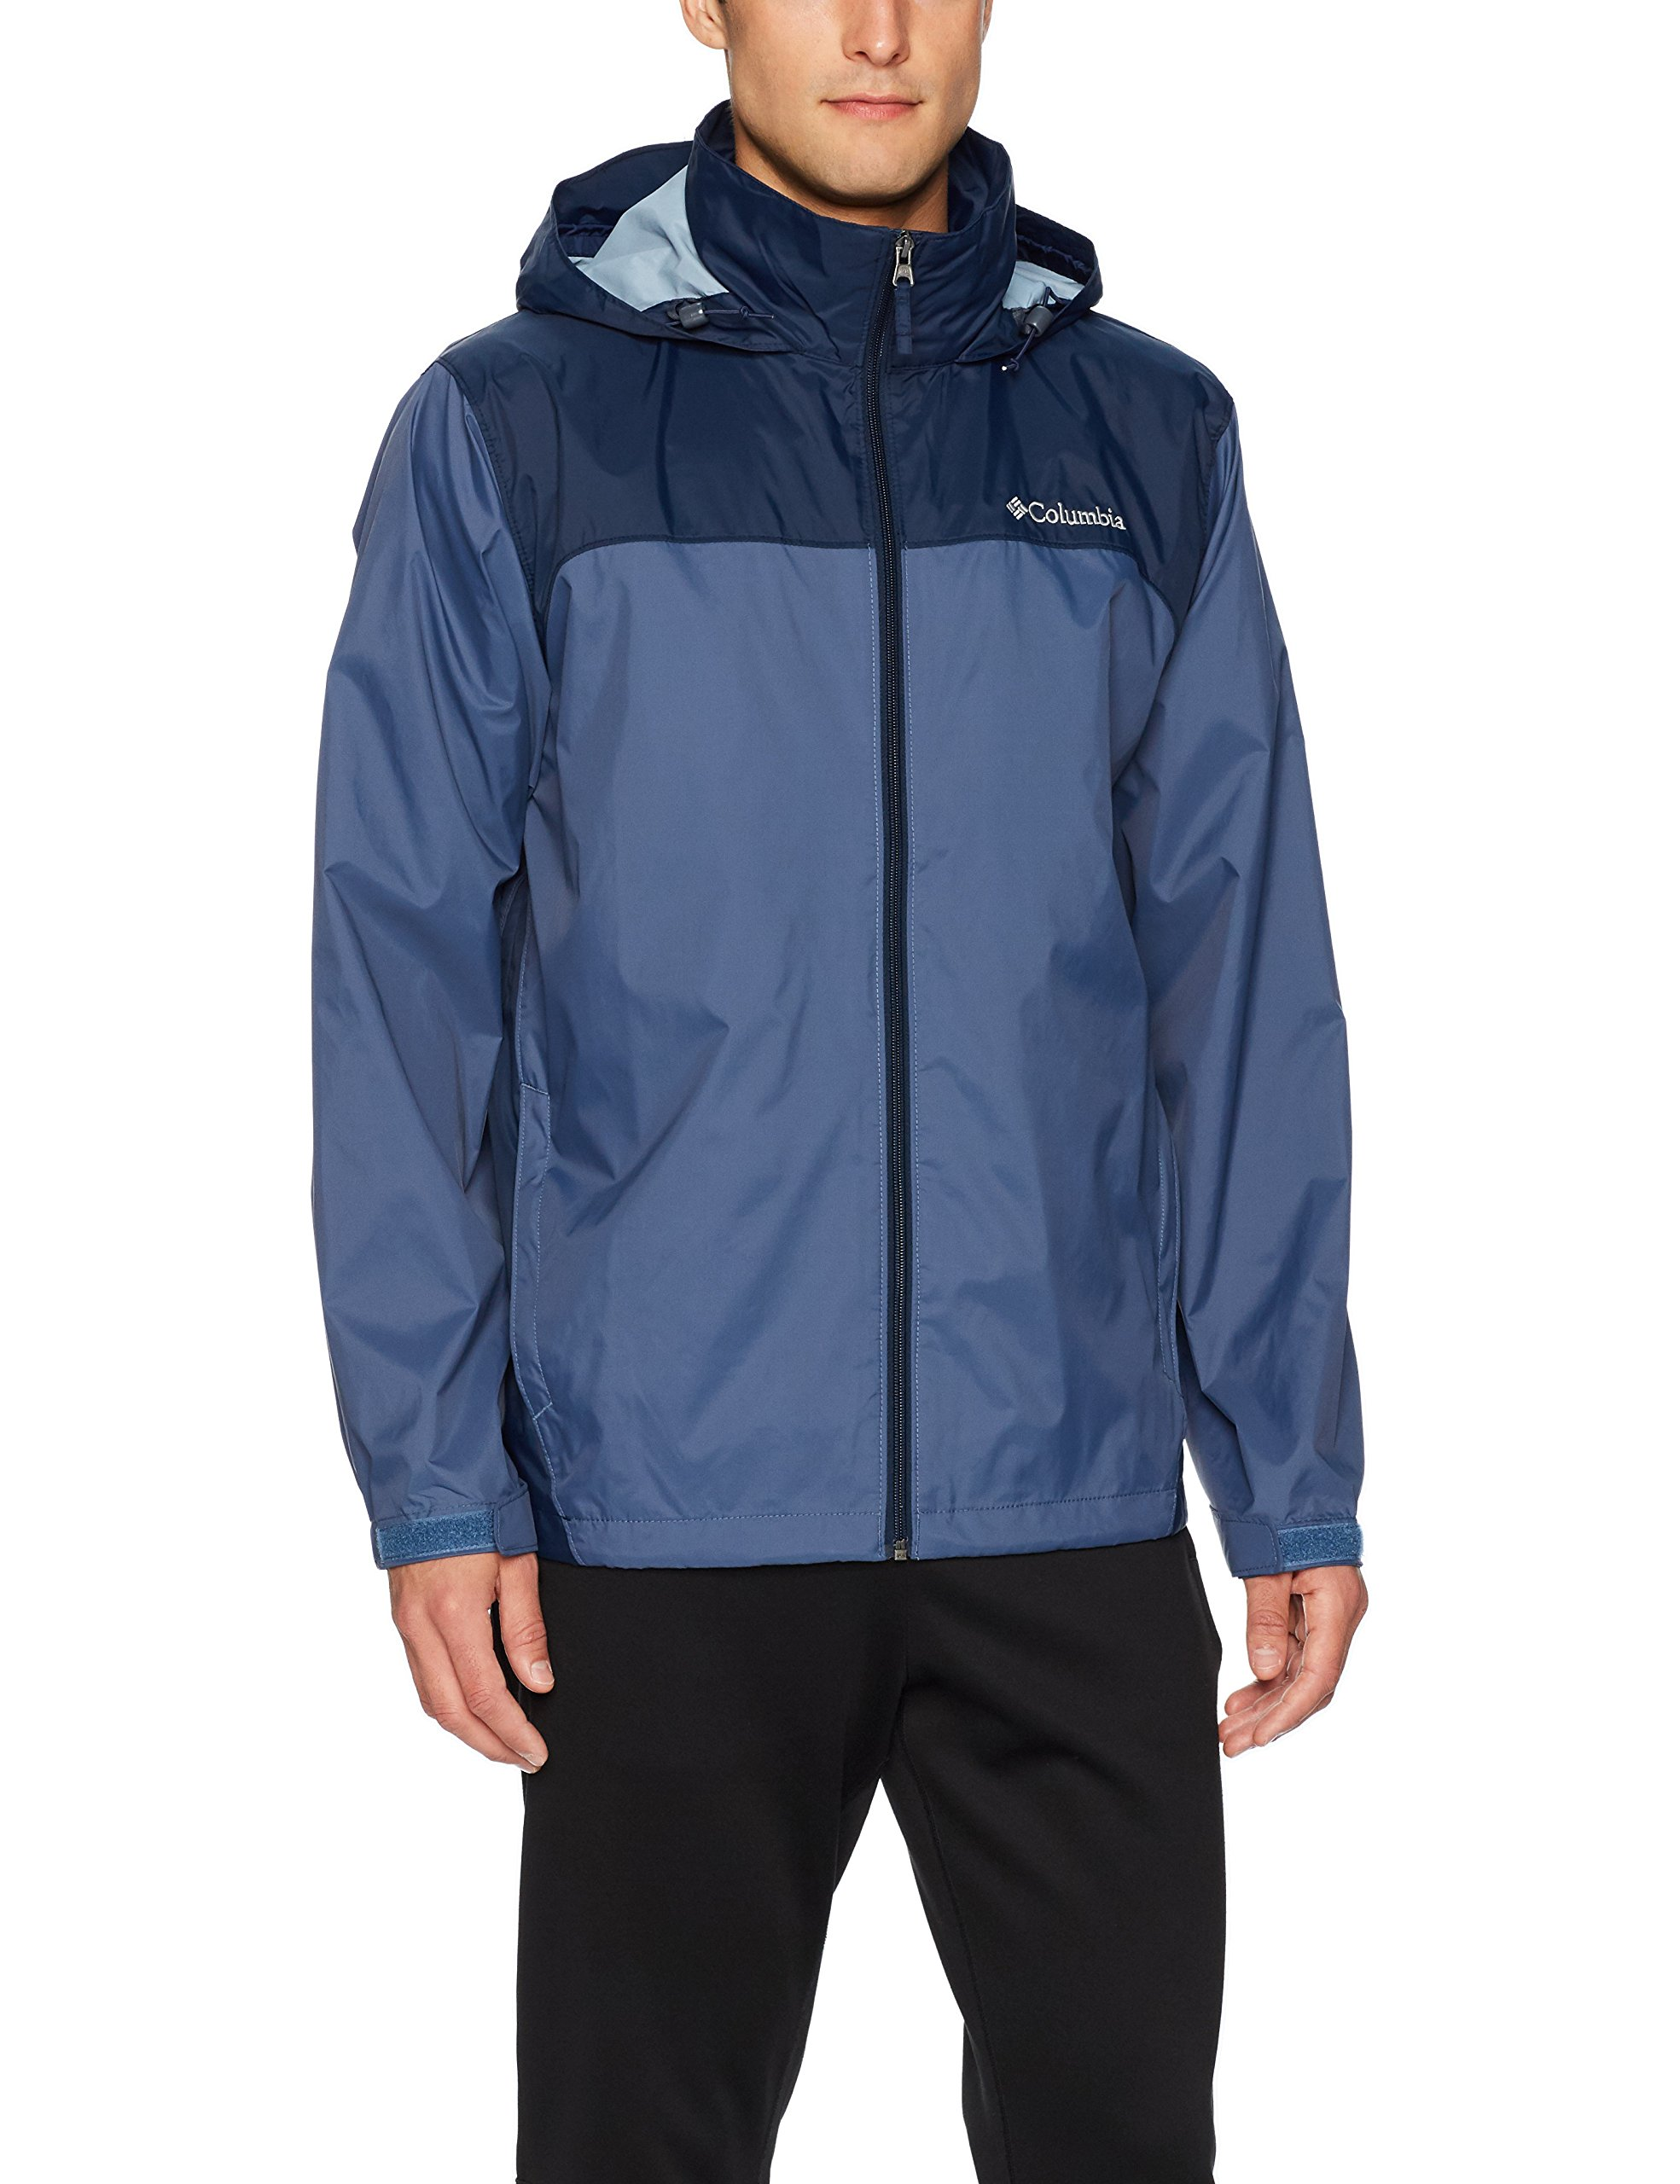 Columbia Men's Glennaker Lake Rain Jacket, Dark Mountain, Collegiate Navy, XX-Large